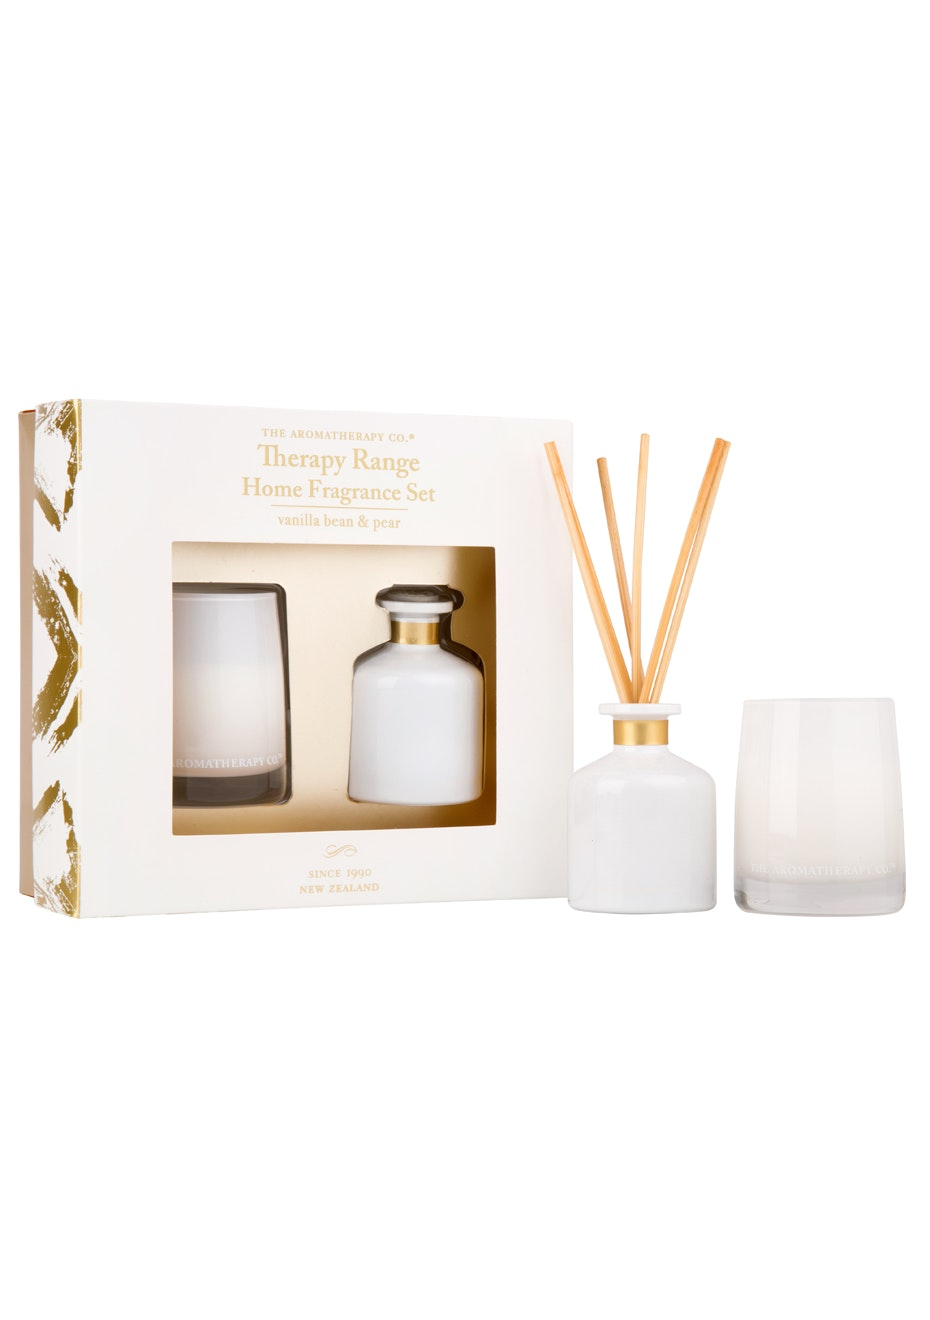 The Aromatherapy Co.  Therapy Limited Edition - Home Fragrance Diffuser and Candle Set  - Vanillla Bean & Pear - 60g